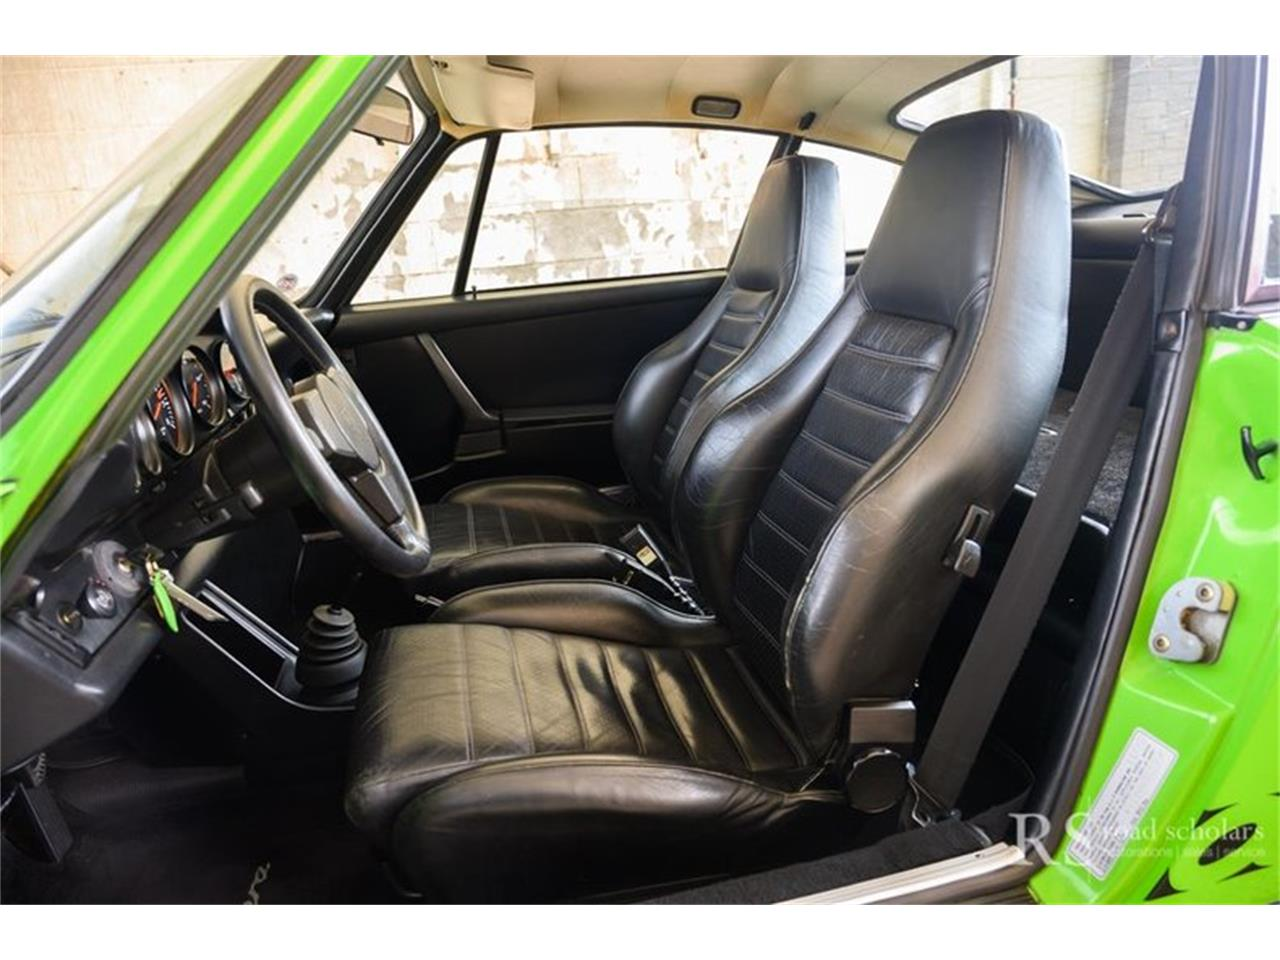 1974 Porsche Carrera for sale in Raleigh, NC – photo 61